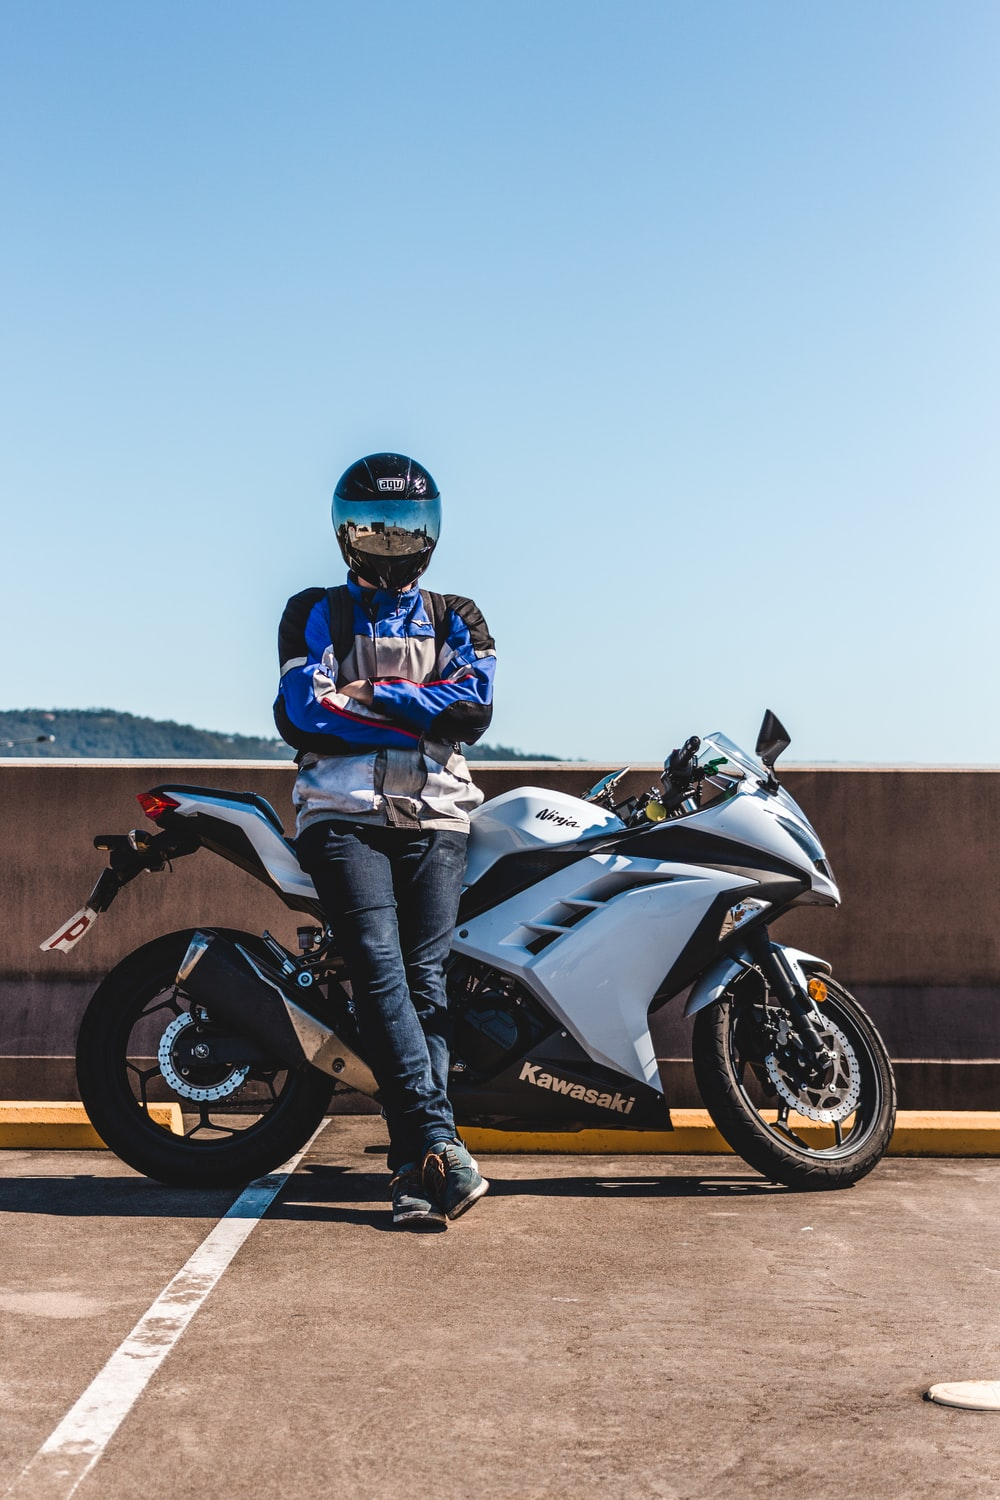 person wearing helmet standing and leaning on Kawasaki sports bike during daytime